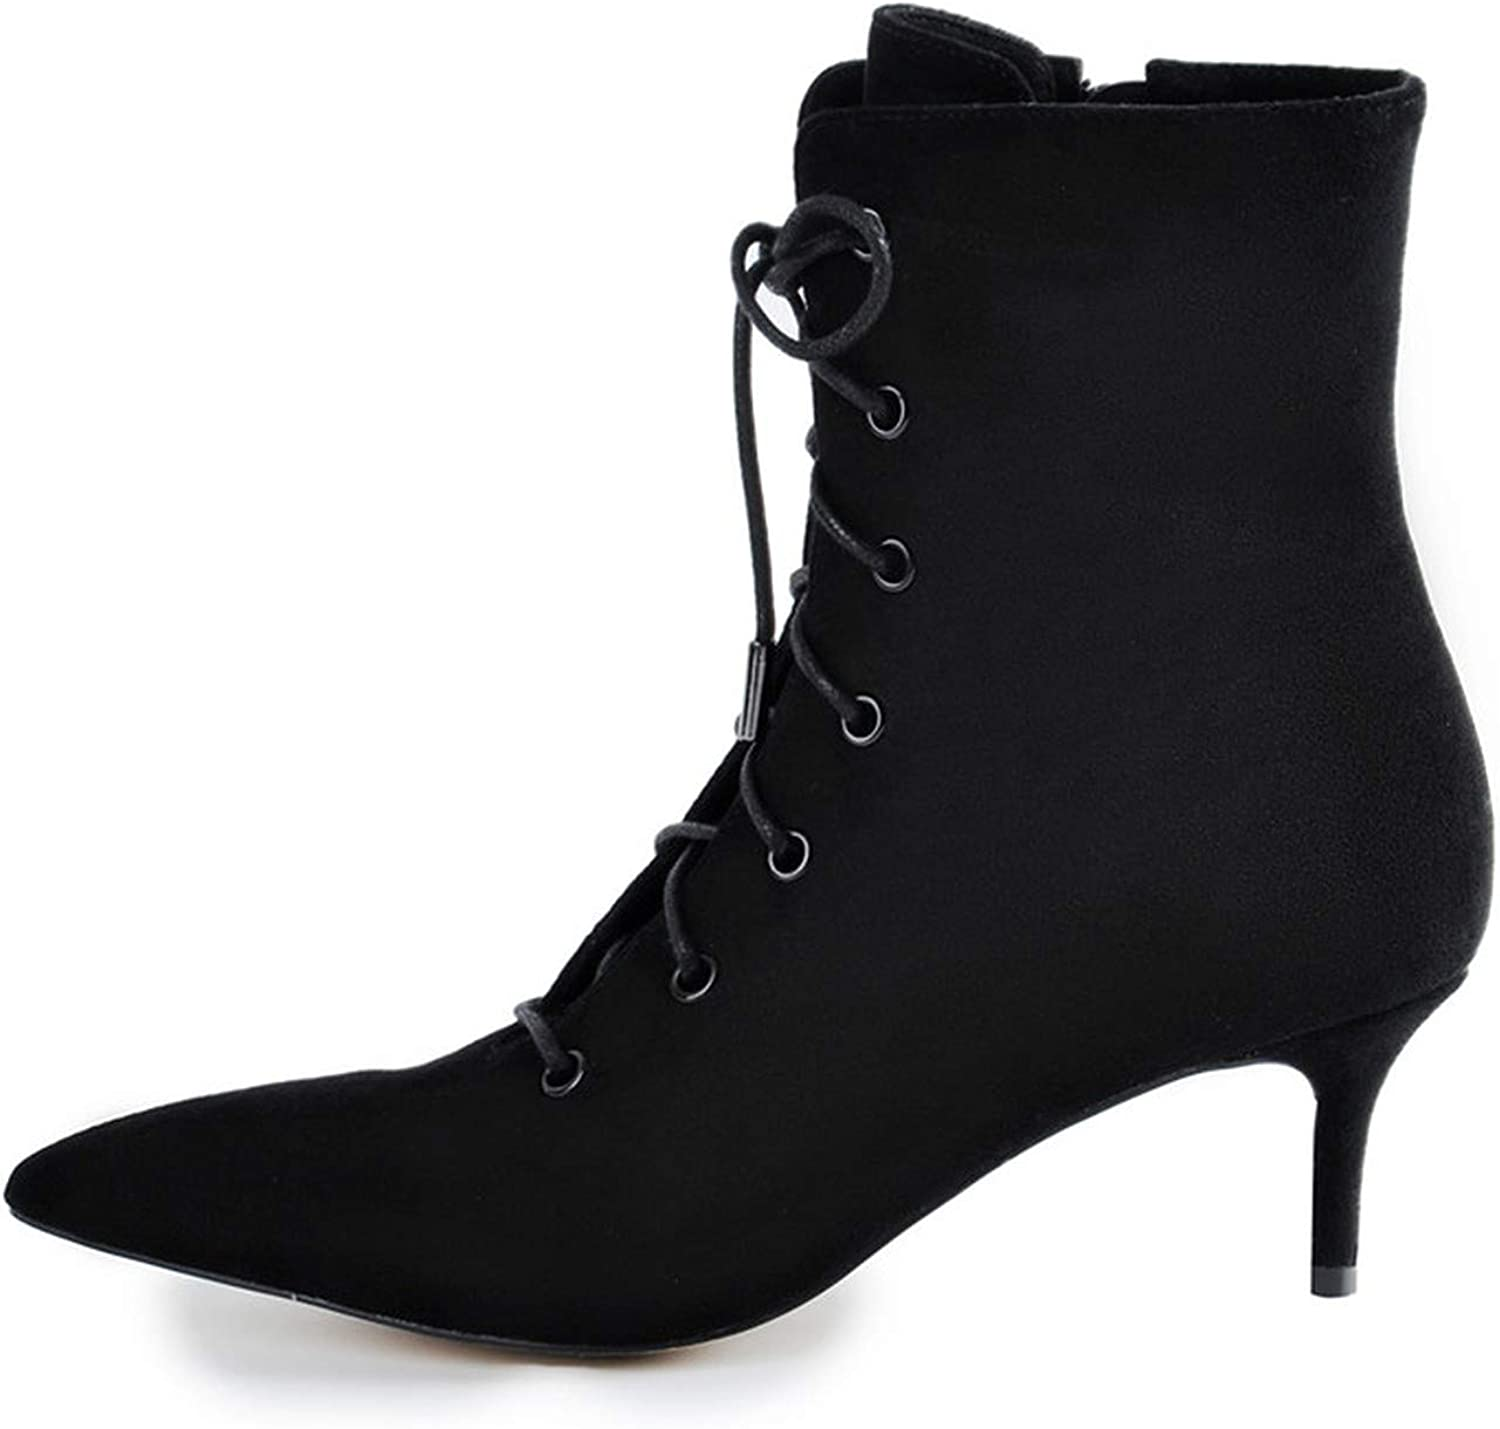 Crazy-shop Women's Animal Print Low Heel Ankle Bootie Pointed Toe Lace Up Comfortable Walking Boots